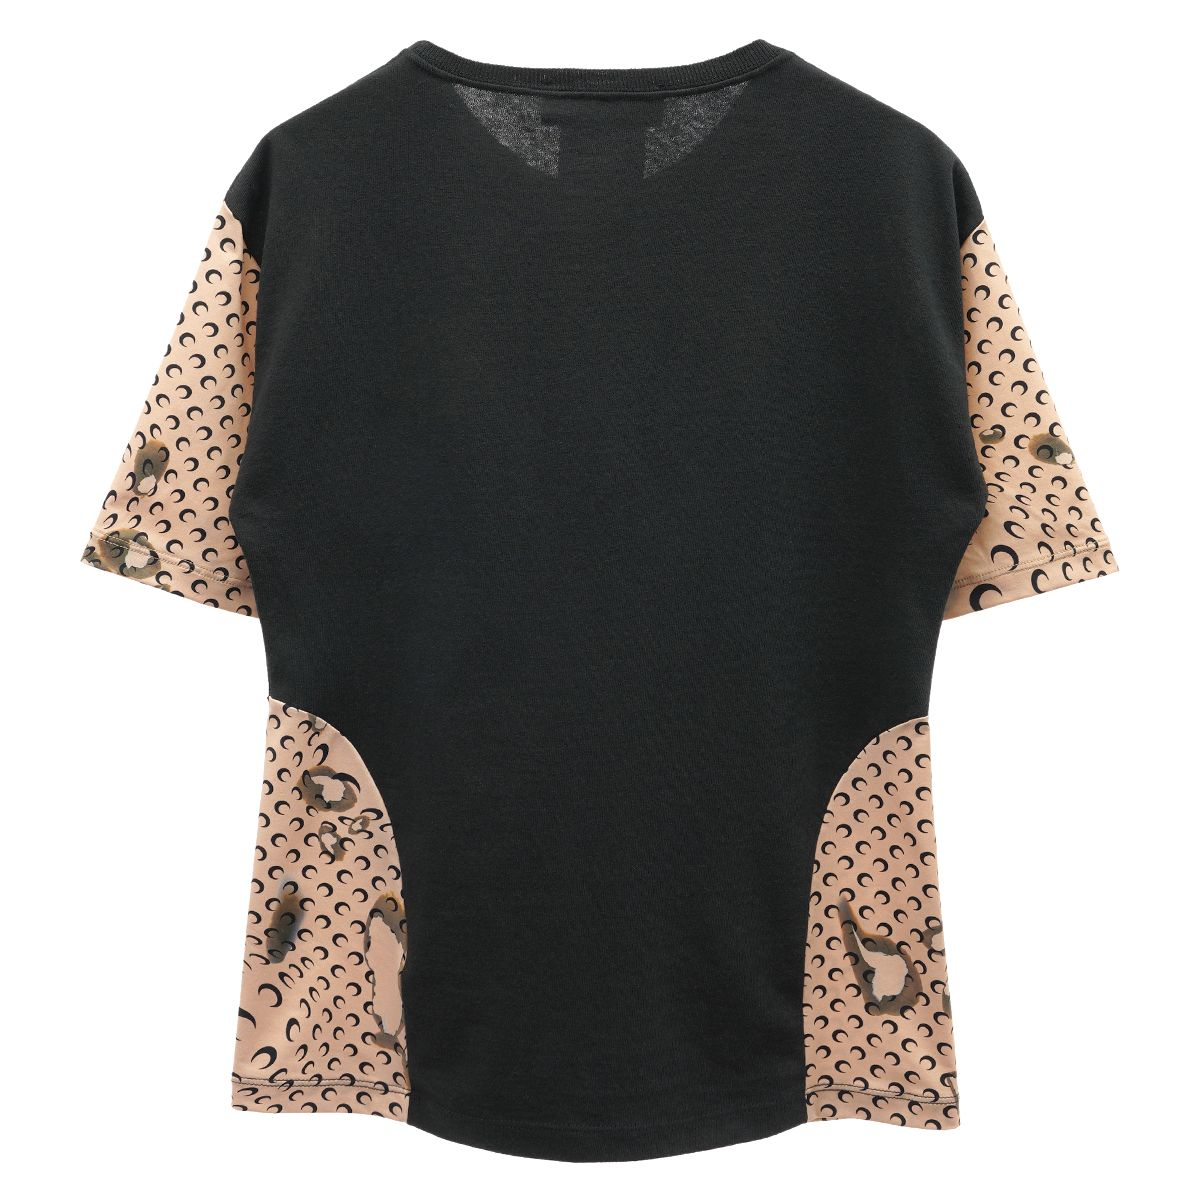 MARINE SERRE REGENERATED T-SHIRT WITH CONTRAST SIDES 1 / 00 : BLACK